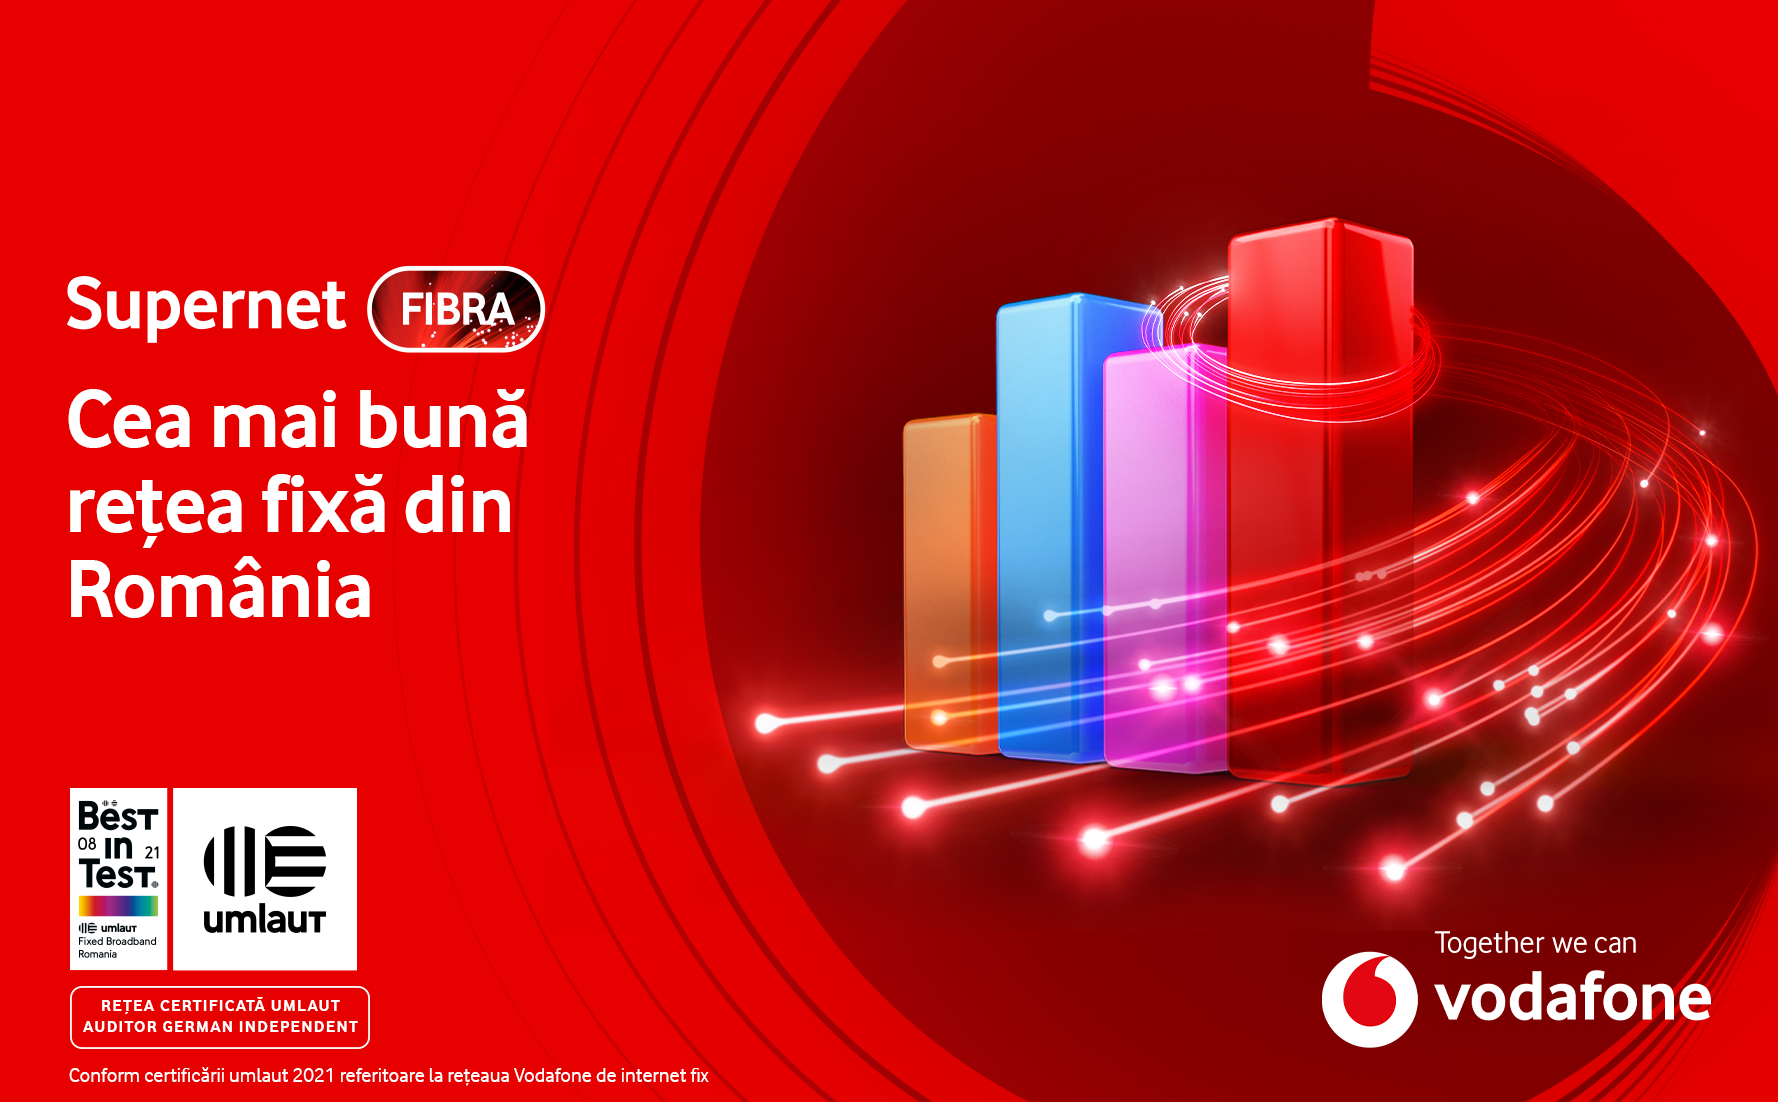 Vodafone Supernet Fiber ensures the best fixed internet user experience in Romania